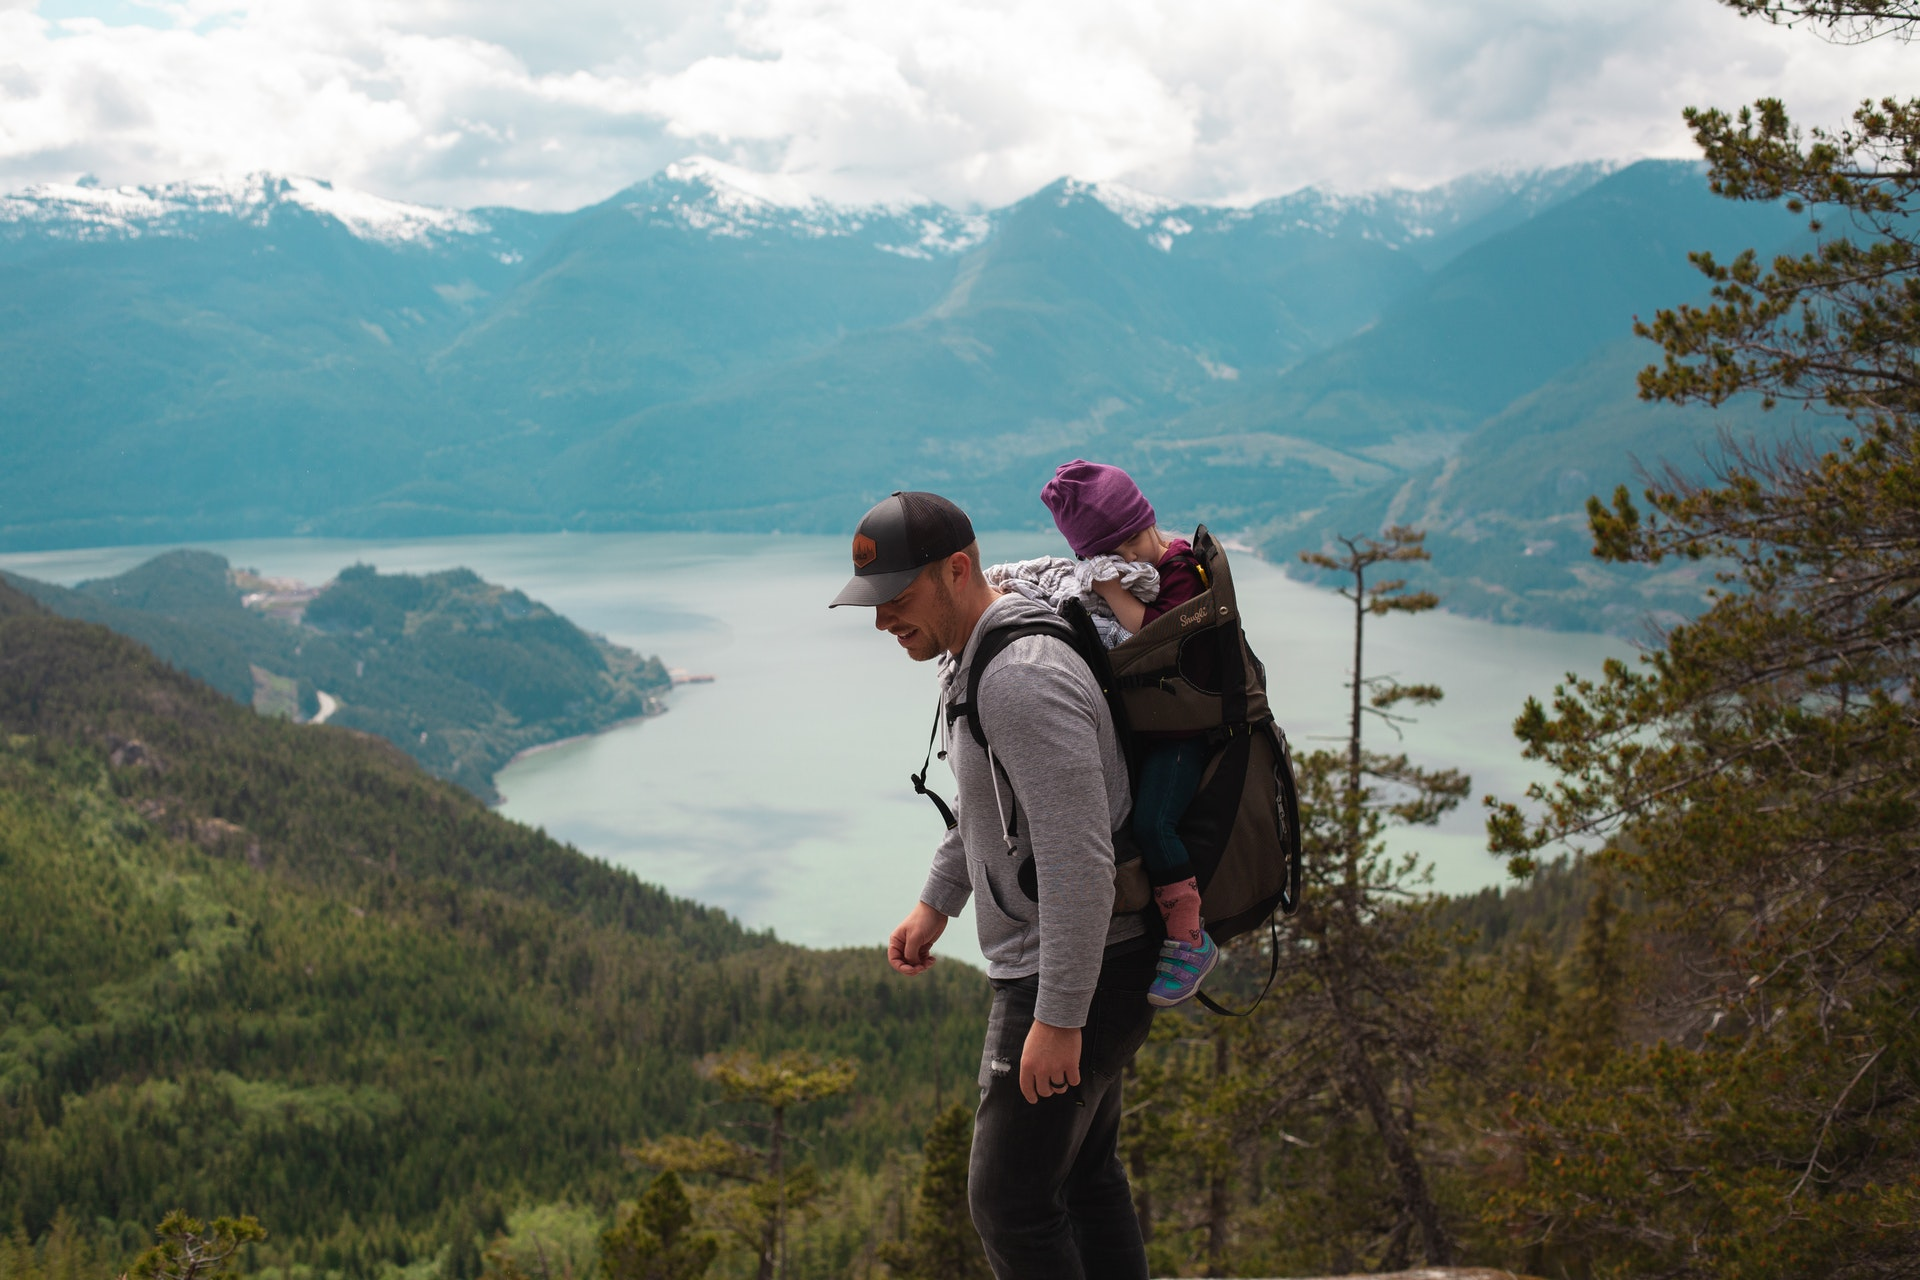 A Guide to Traveling with a BabyA Guide to Traveling with a Baby